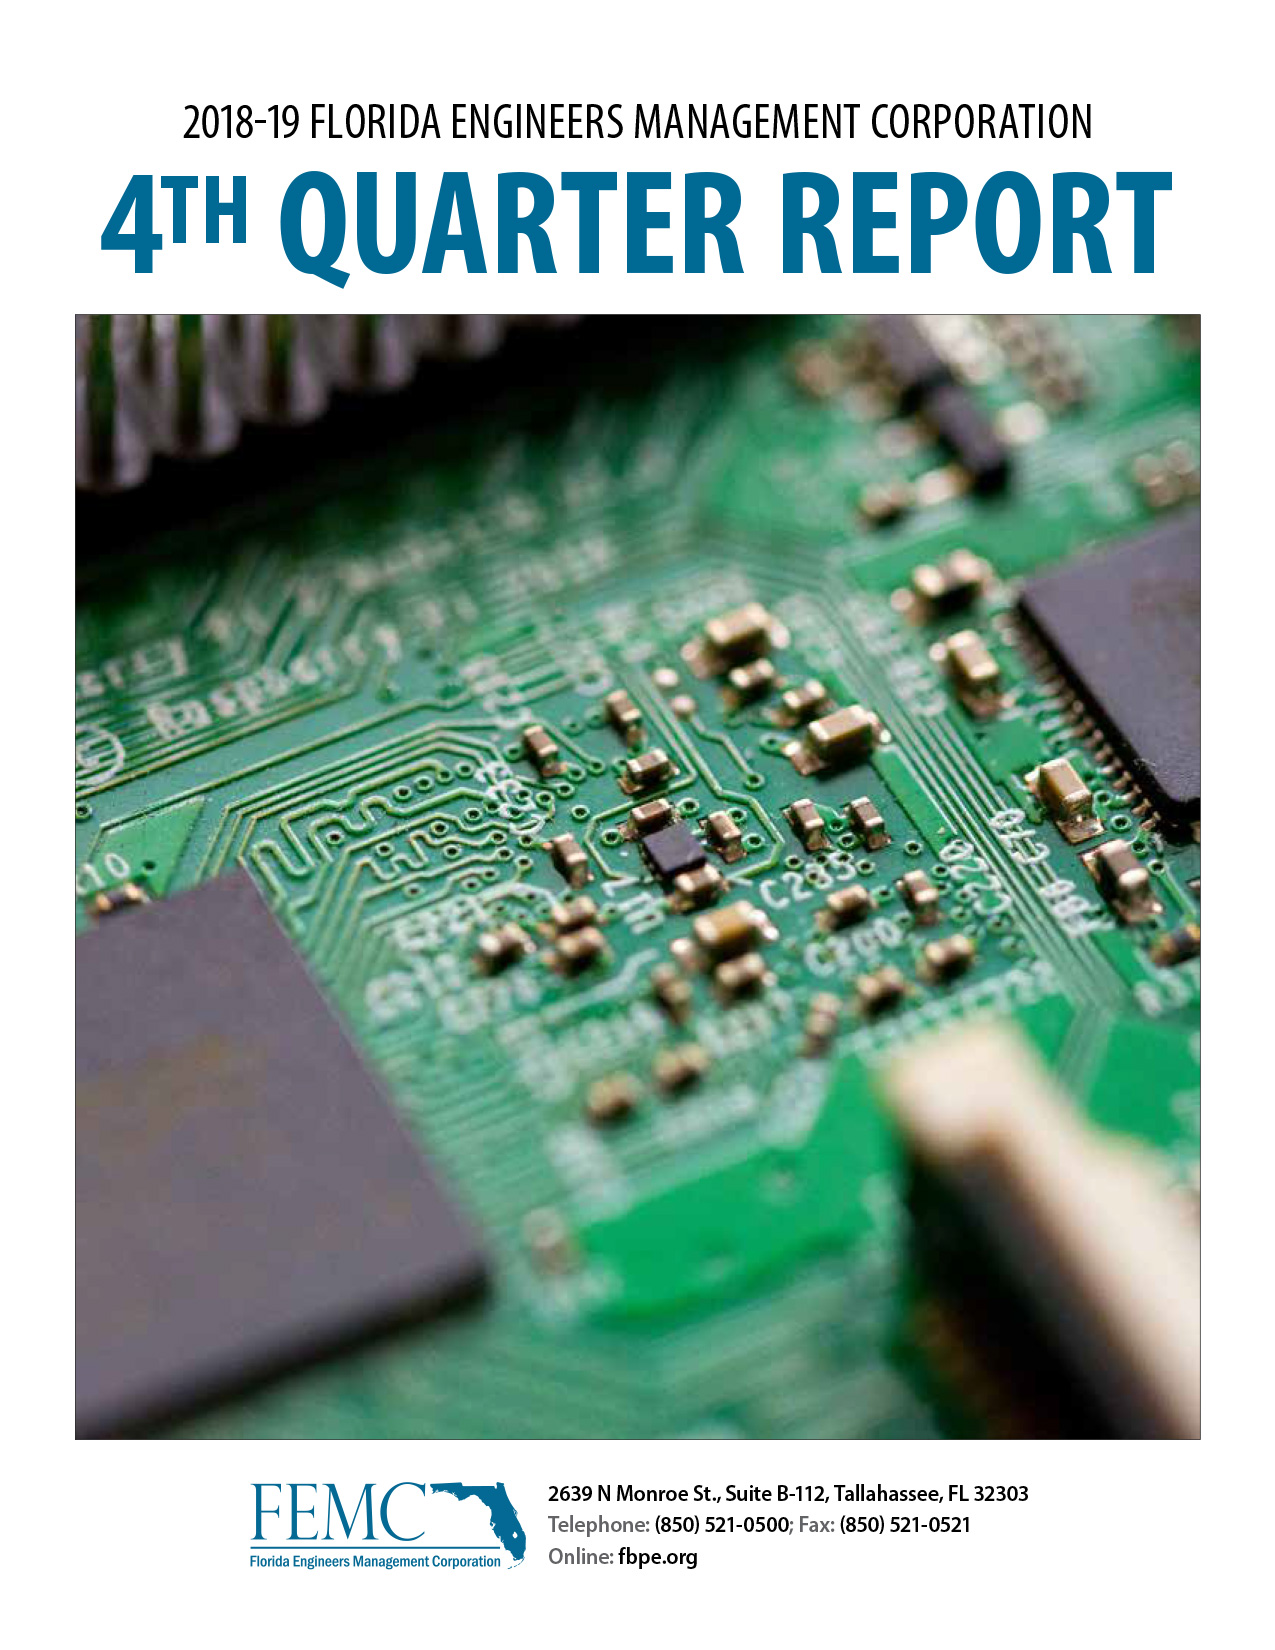 Cover of the 2018-19 Florida Engineers Management 4th Quarter Report, showing a circuit board